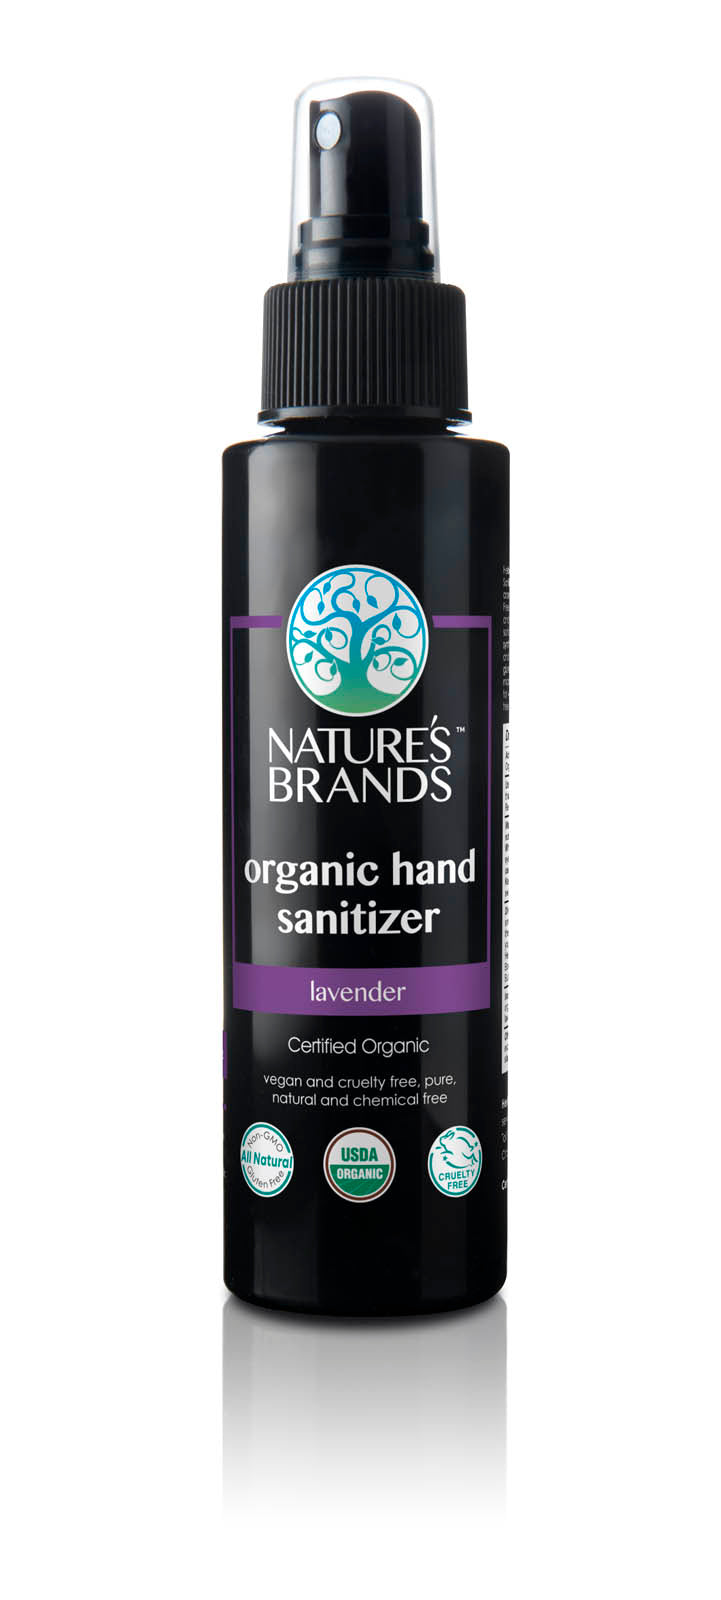 Herbal Choice Mari Organic Hand Sanitizer - Herbal Choice Mari Organic Hand Sanitizer - Herbal Choice Mari Organic Hand Sanitizer